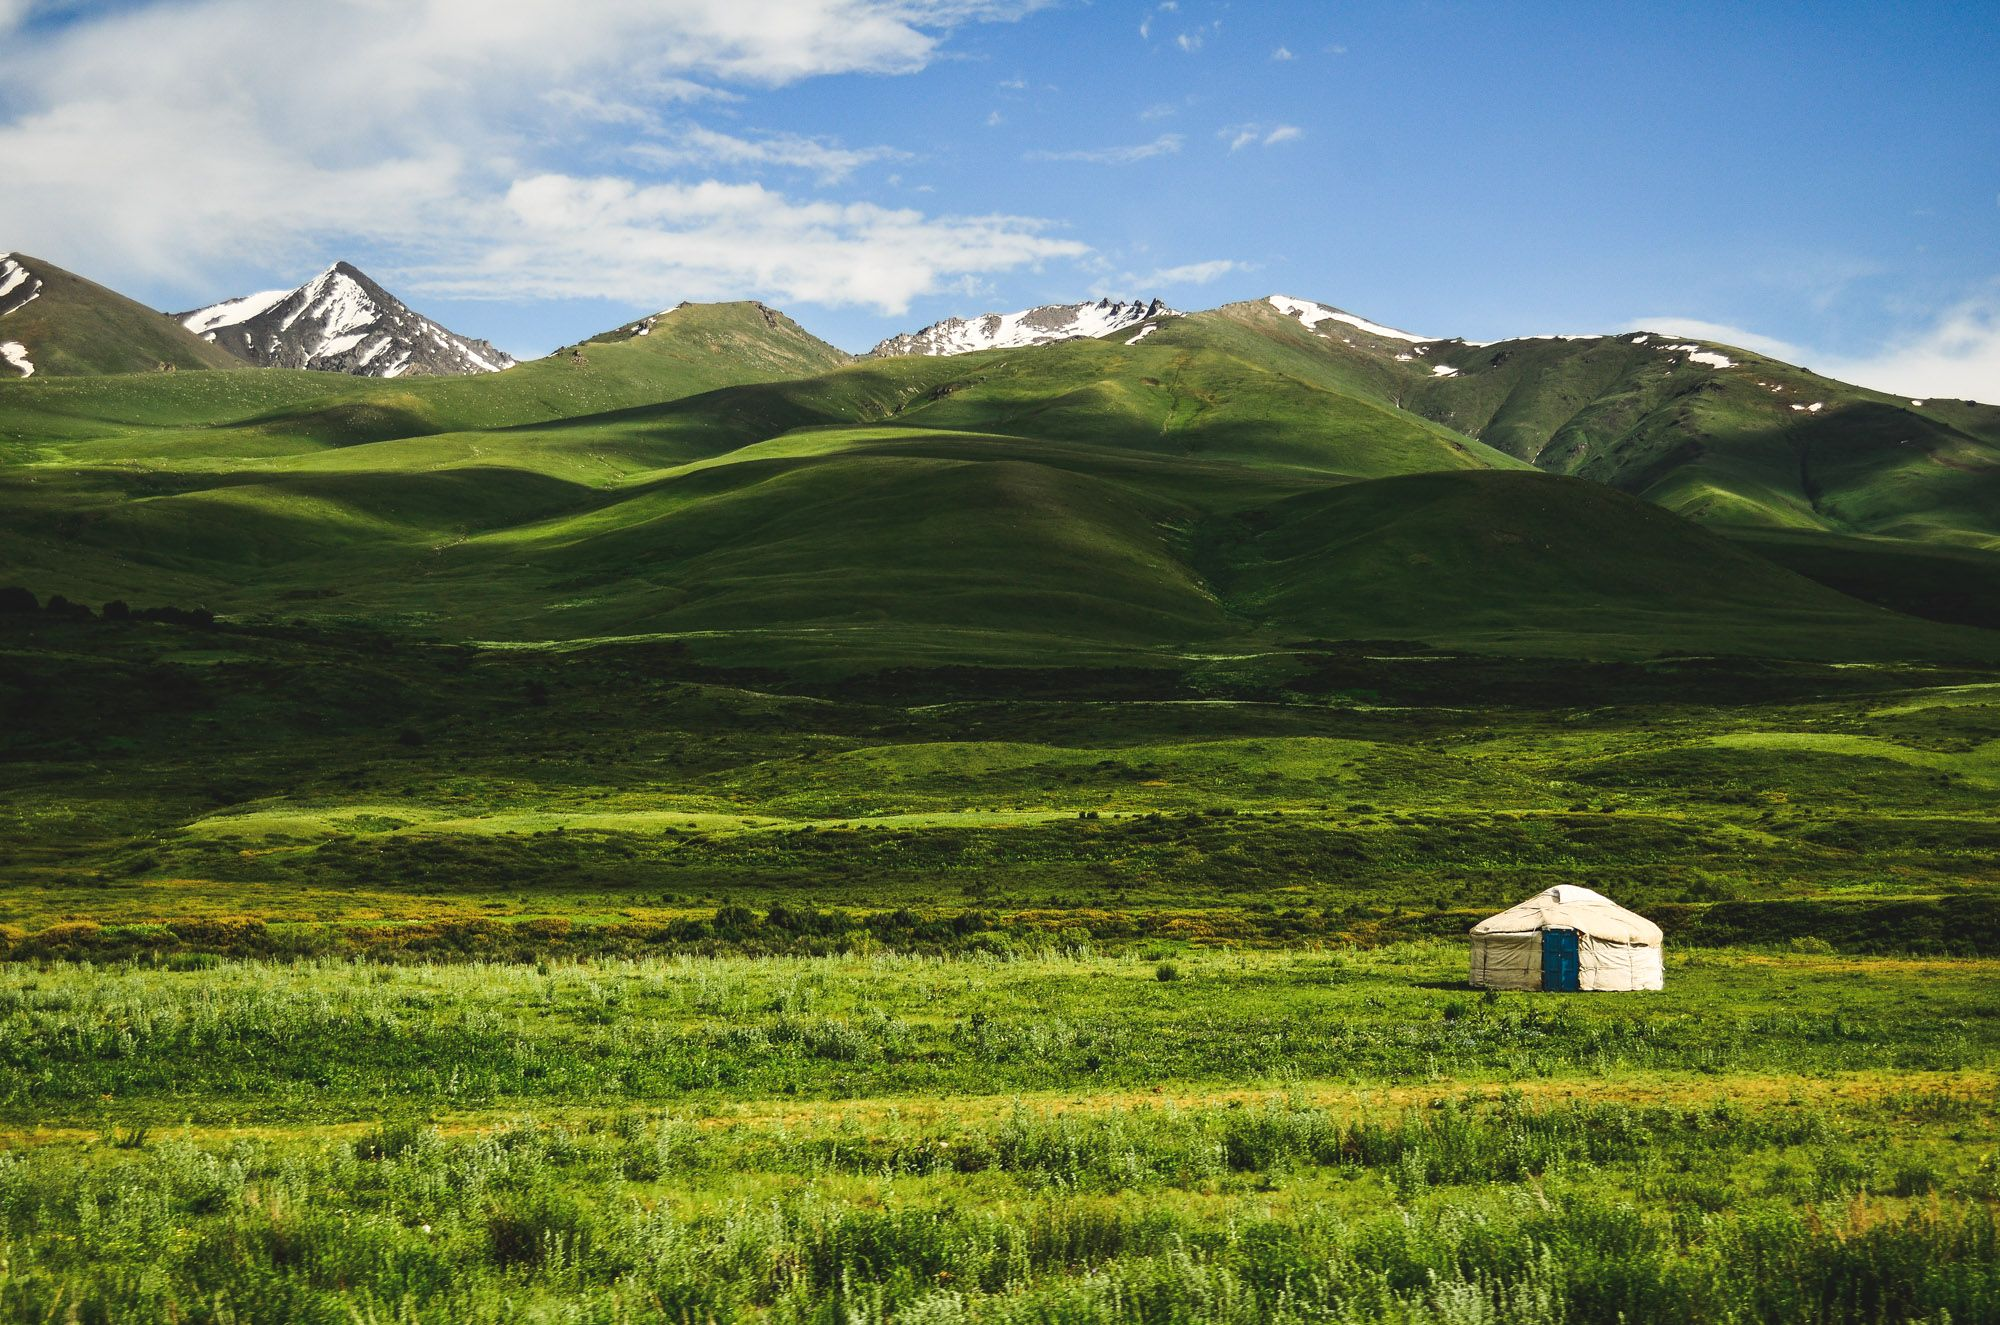 Kyrgyzstan yurt and green landscape